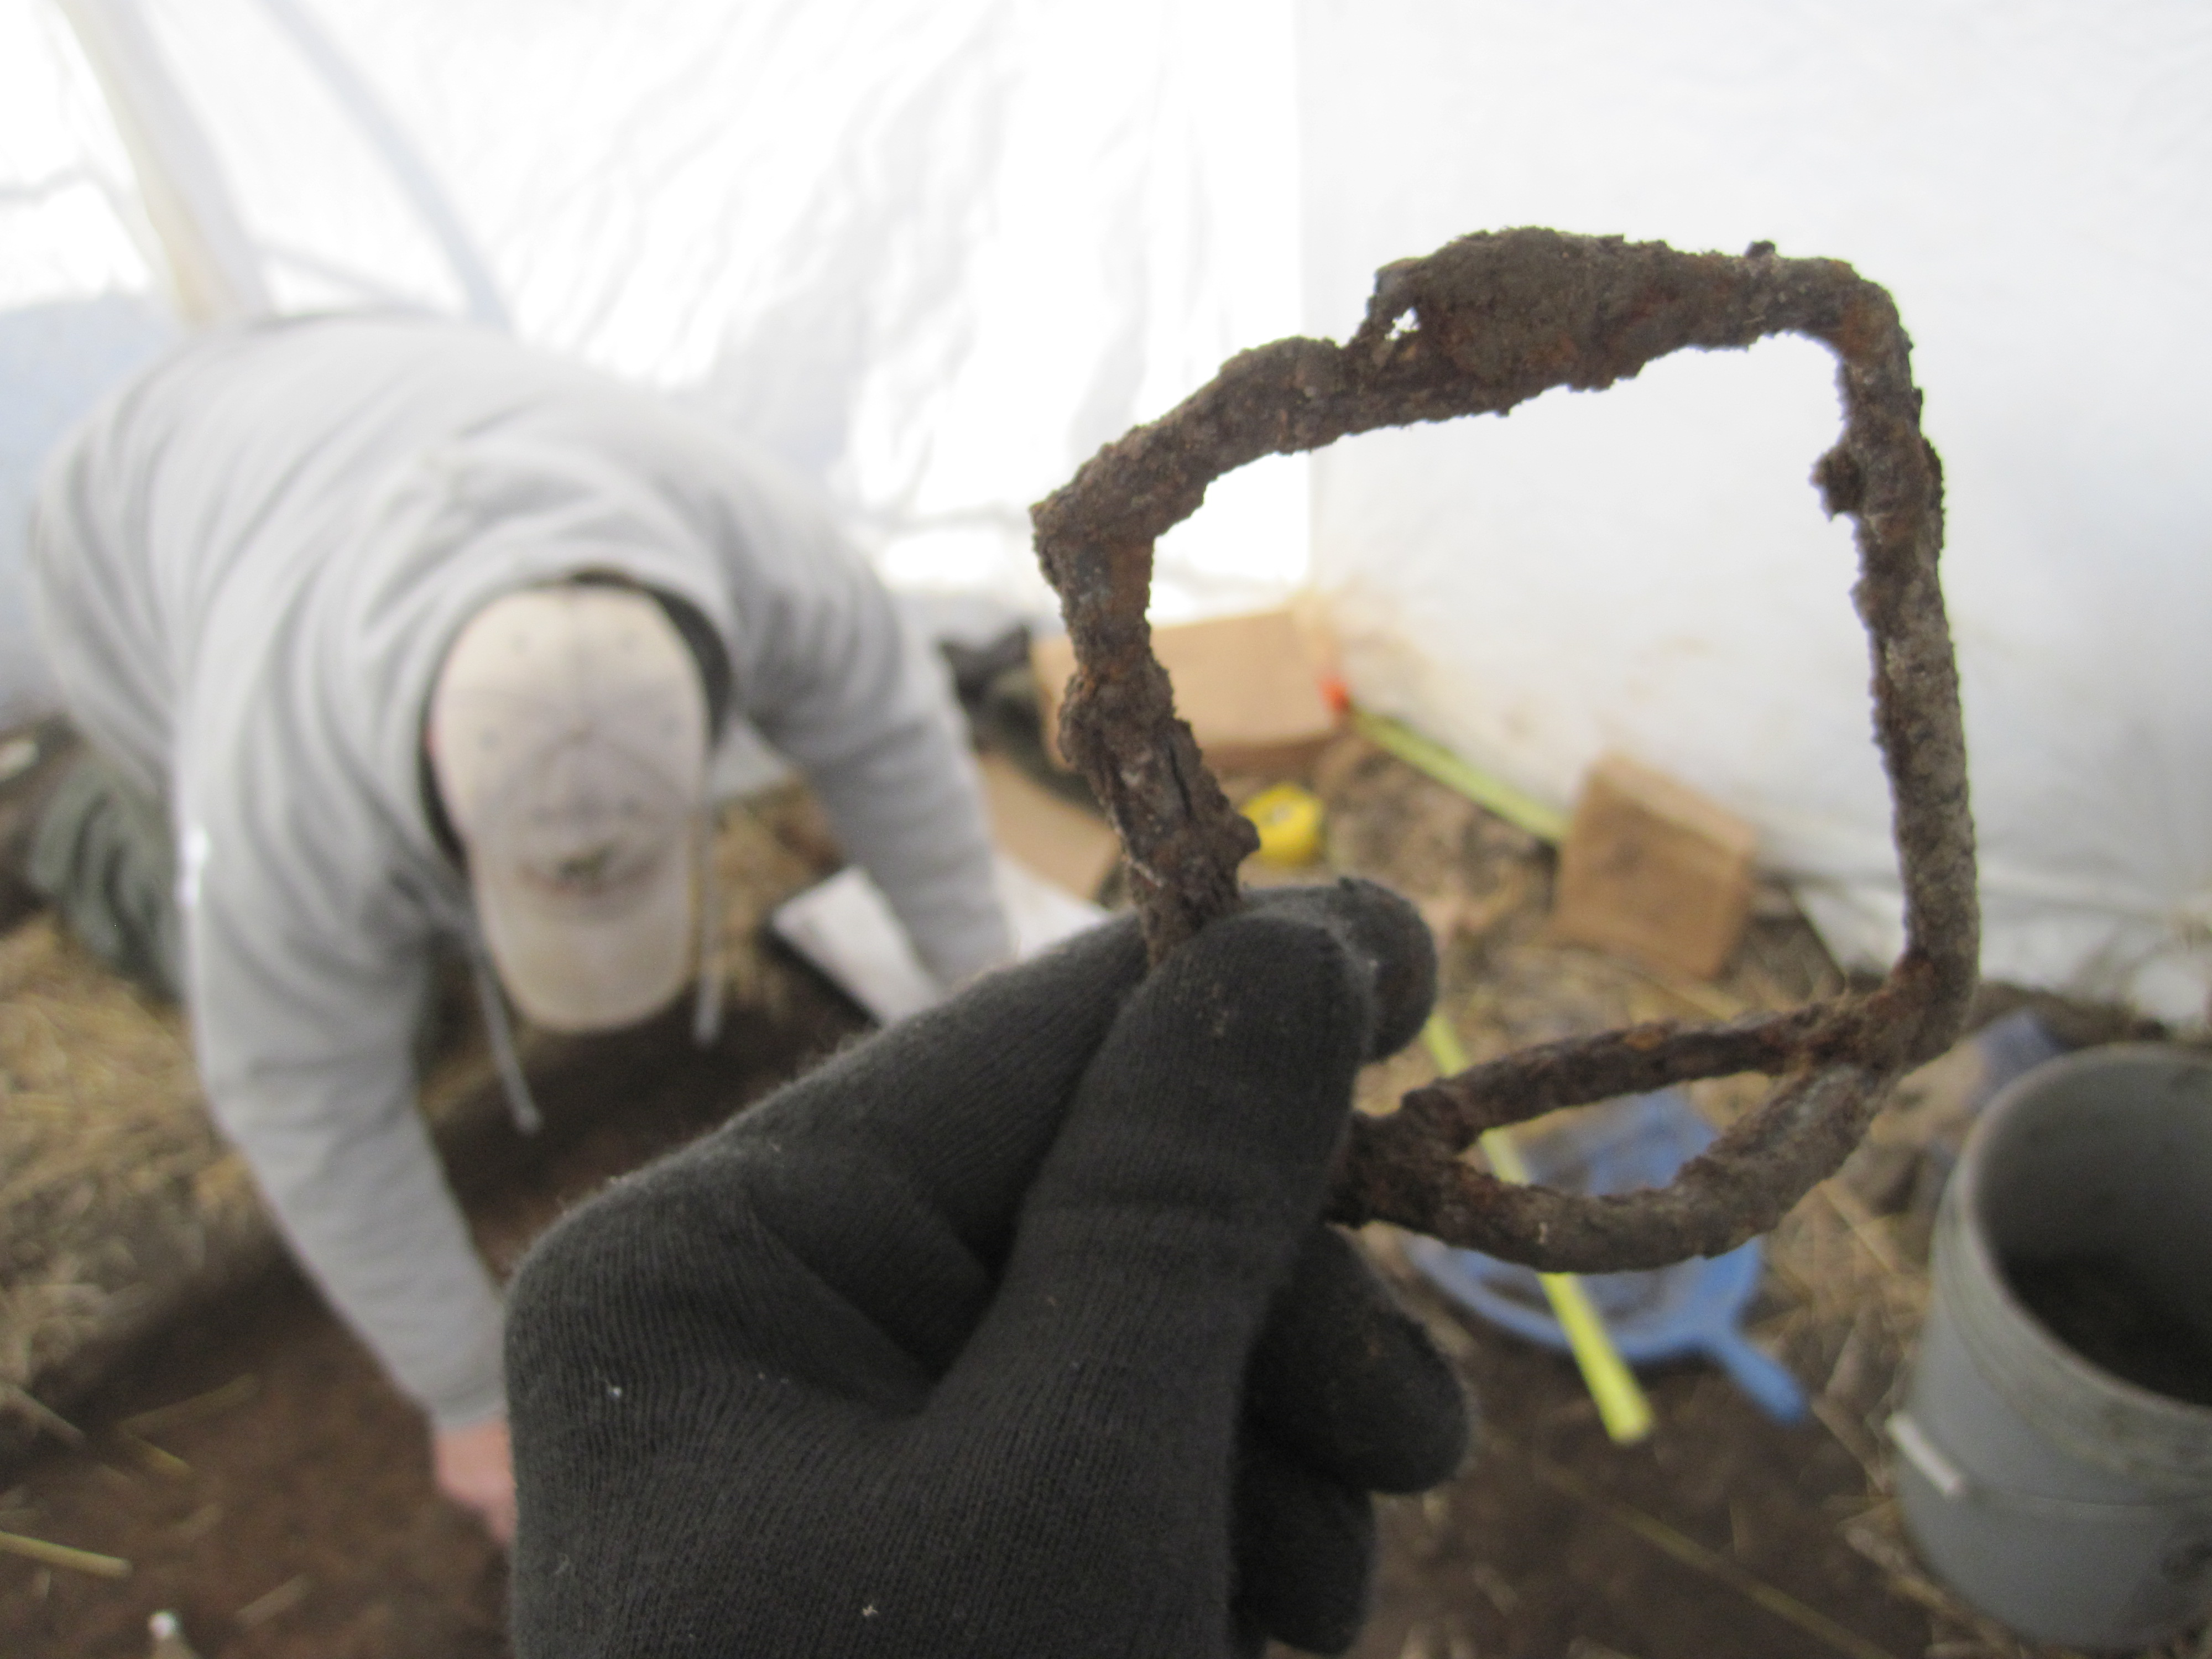 Stirrup recovered during excavation.